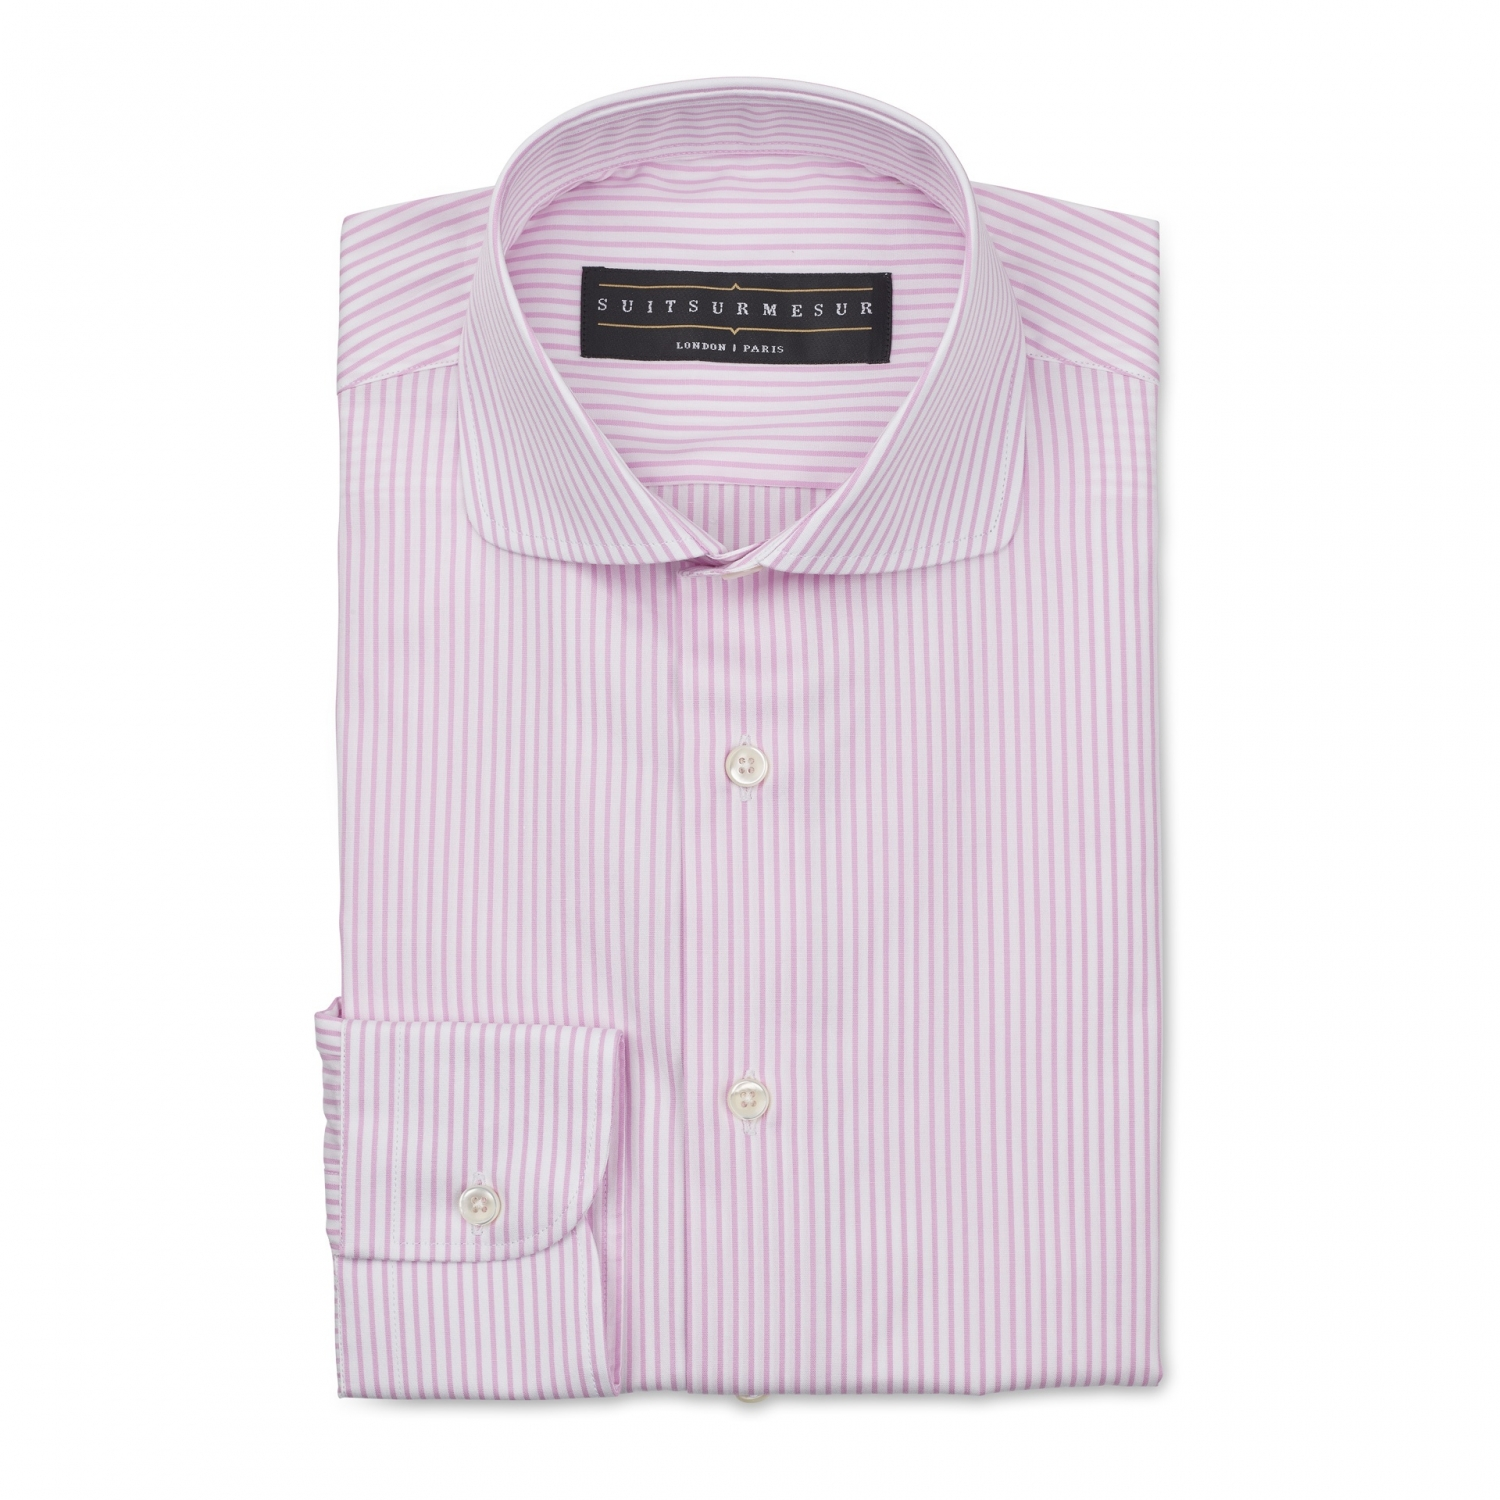 Pink Bengal stripe (round Italian collar) poplin shirt – 100% cotton Canclini fabric